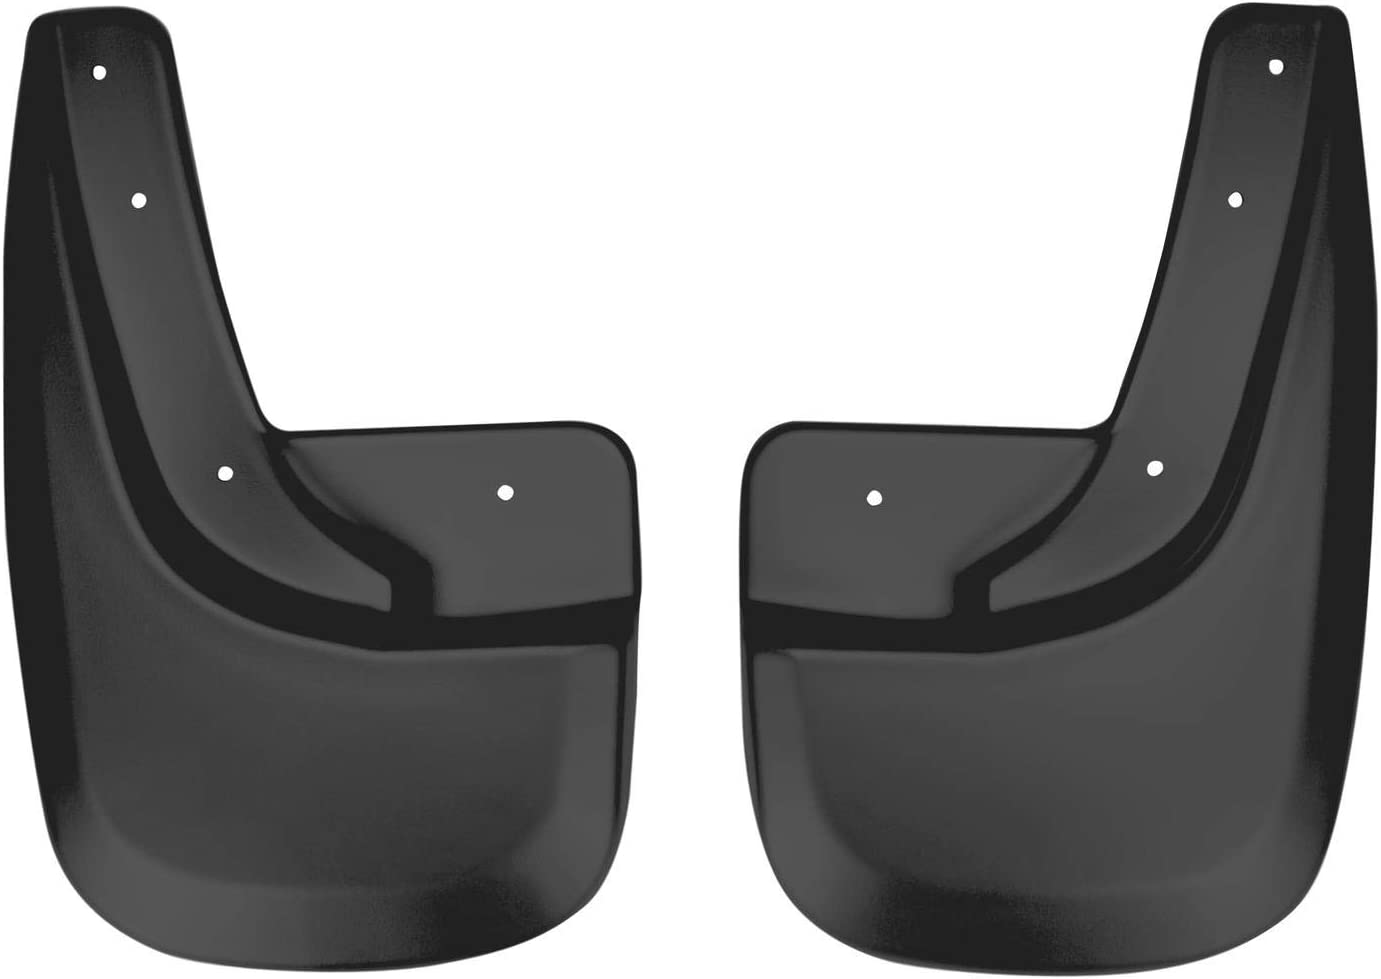 1 Pair Husky Liners 57621 Rear Mud Guards Ford Explorer 07-10